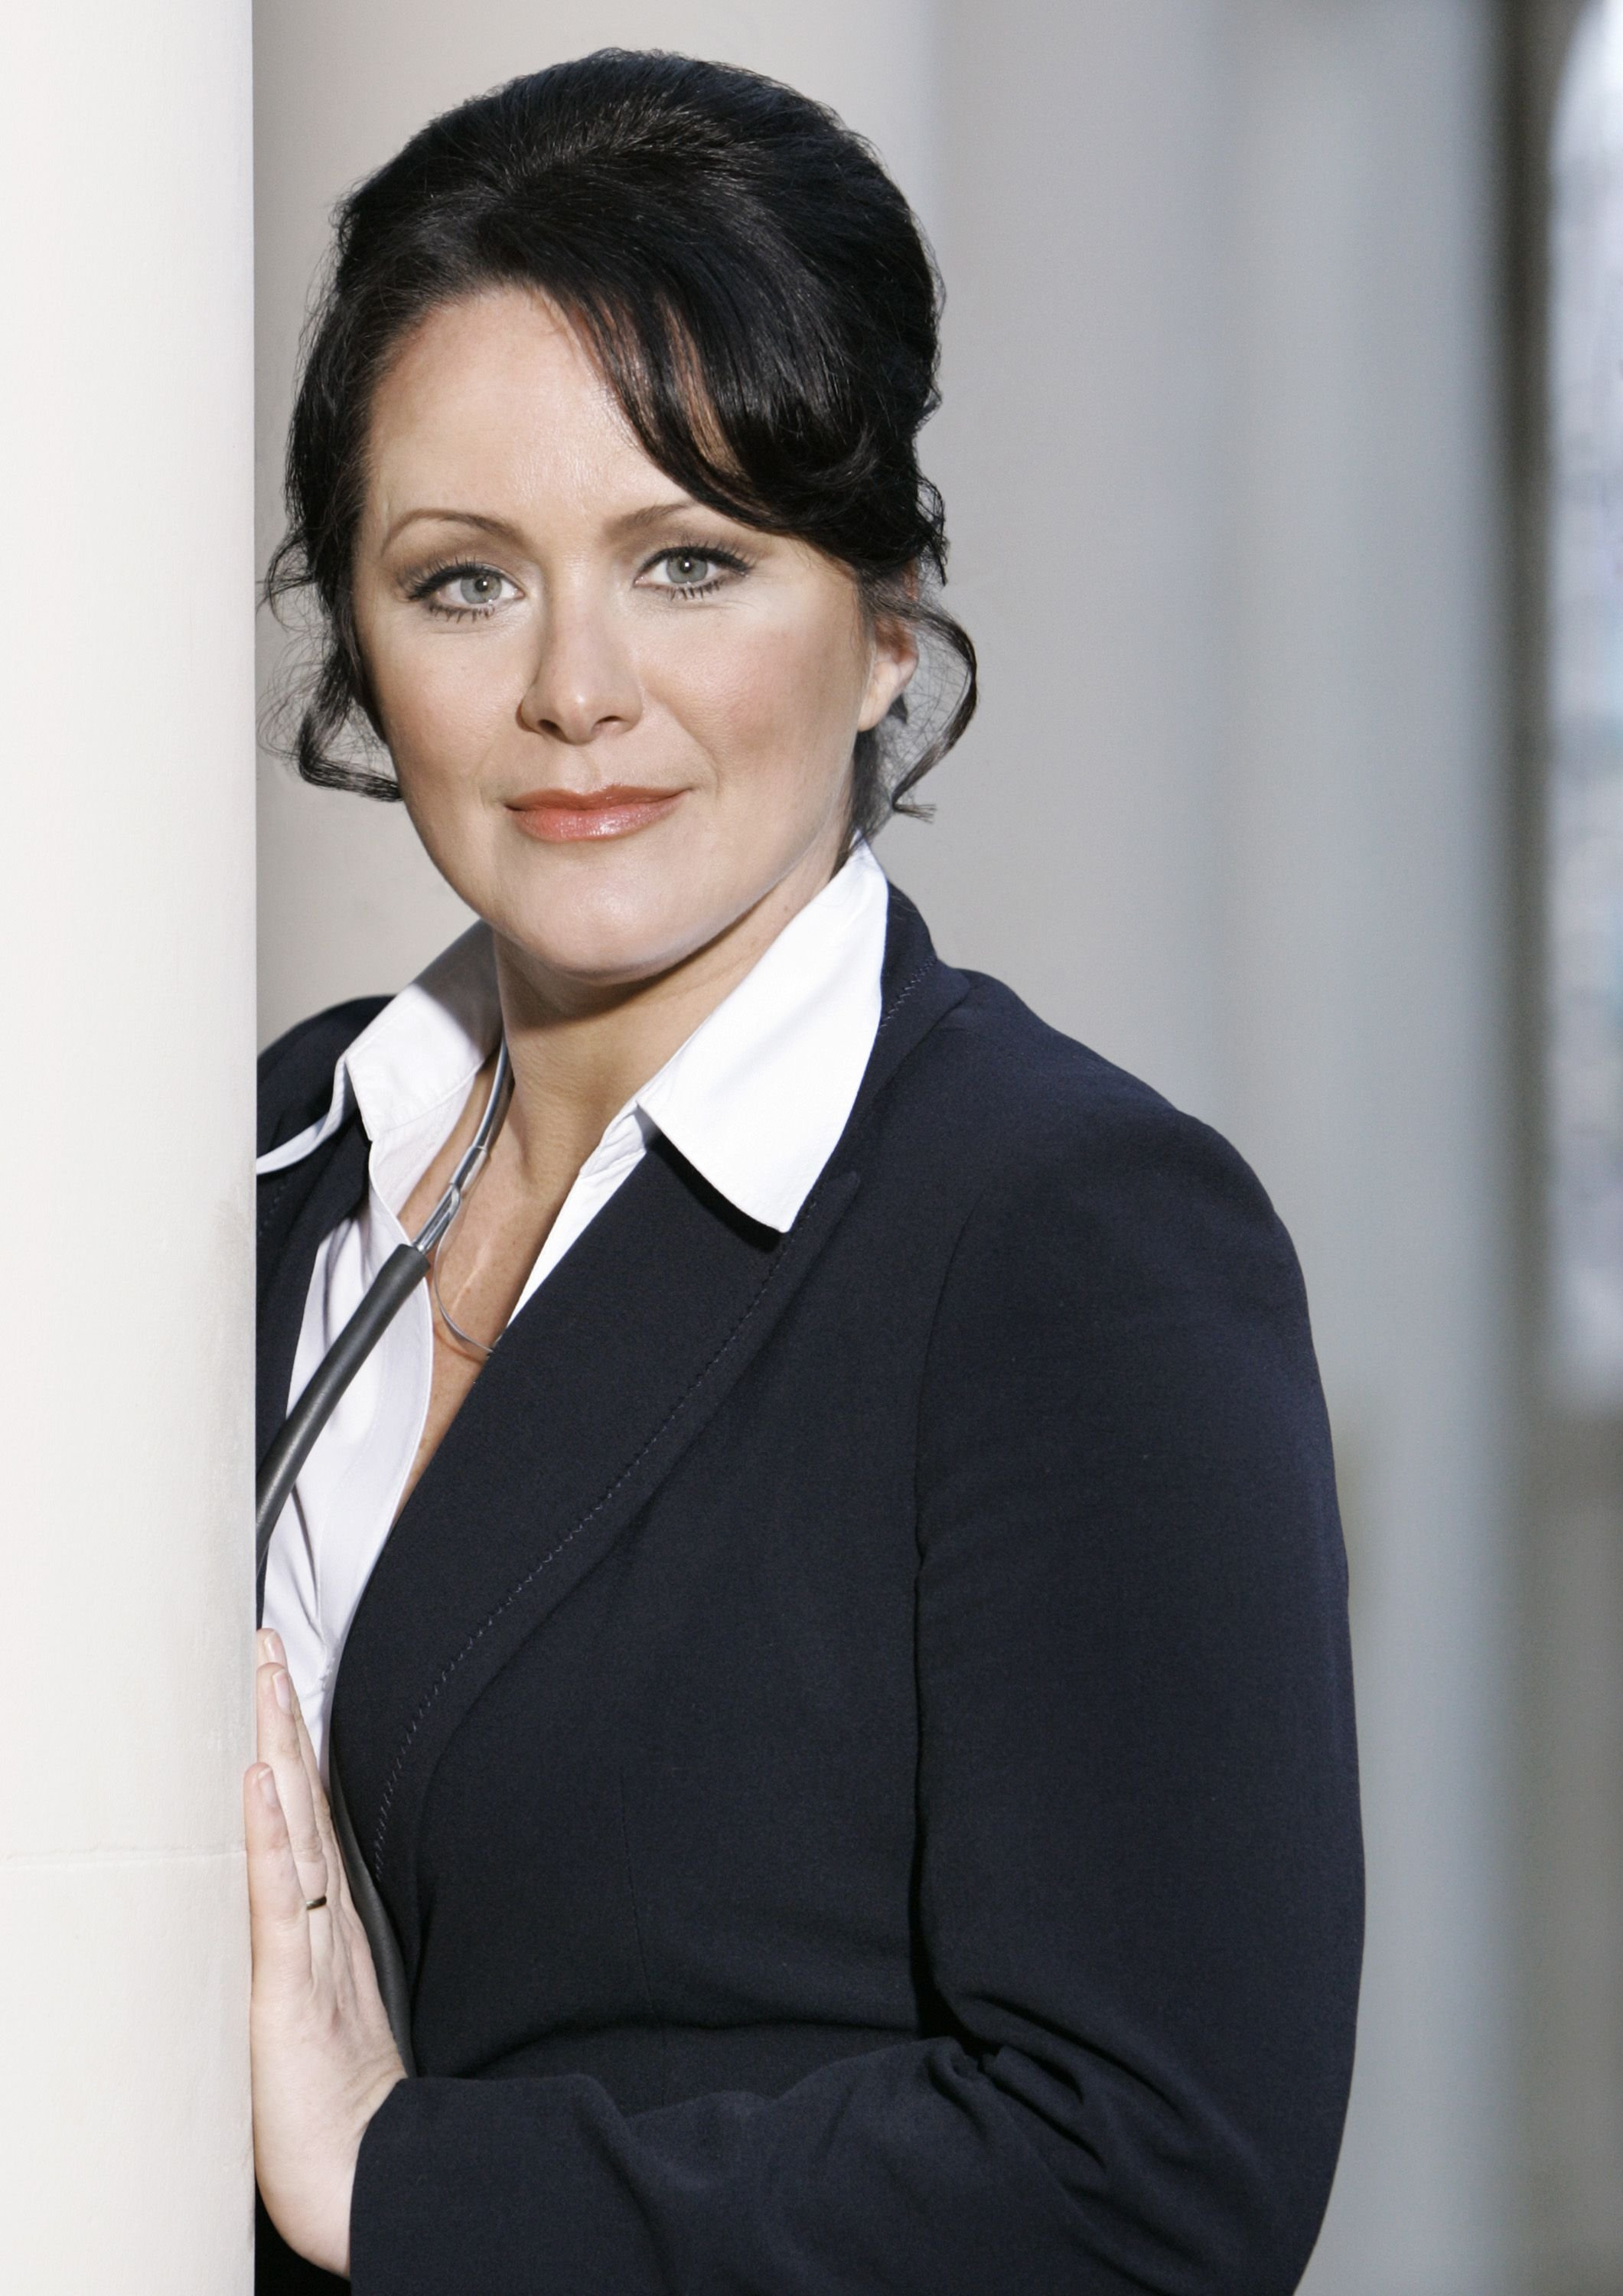 Editorial use only Mandatory Credit: Photo by ITV/Shutterstock (1471661c) Amy Robbins as Dr Jill Weatherill 'The Royal' TV Programme, Series 8. - 2011 Episode : Manoevers. The series opens with Mr Middleditch (Ian Carmichael) who has come in to St Aidan's hospital, accompanied by his wife, for a routine operation. Noticing that Mrs Middleditch (Susan Hampshire) looks unwell, the hospital decides to give her a blood transfusion. Distracted by the attentions of a rich divorced playboy, who has promised to marry her, Susie Dixon (Sarah Beck Mather) administers the wrong blood, which later results in serious consequences for both her and the patient. Dr Weatherill (Amy Robbins) manages to save Mrs Middleditch's life, although it's touch and go for a time.